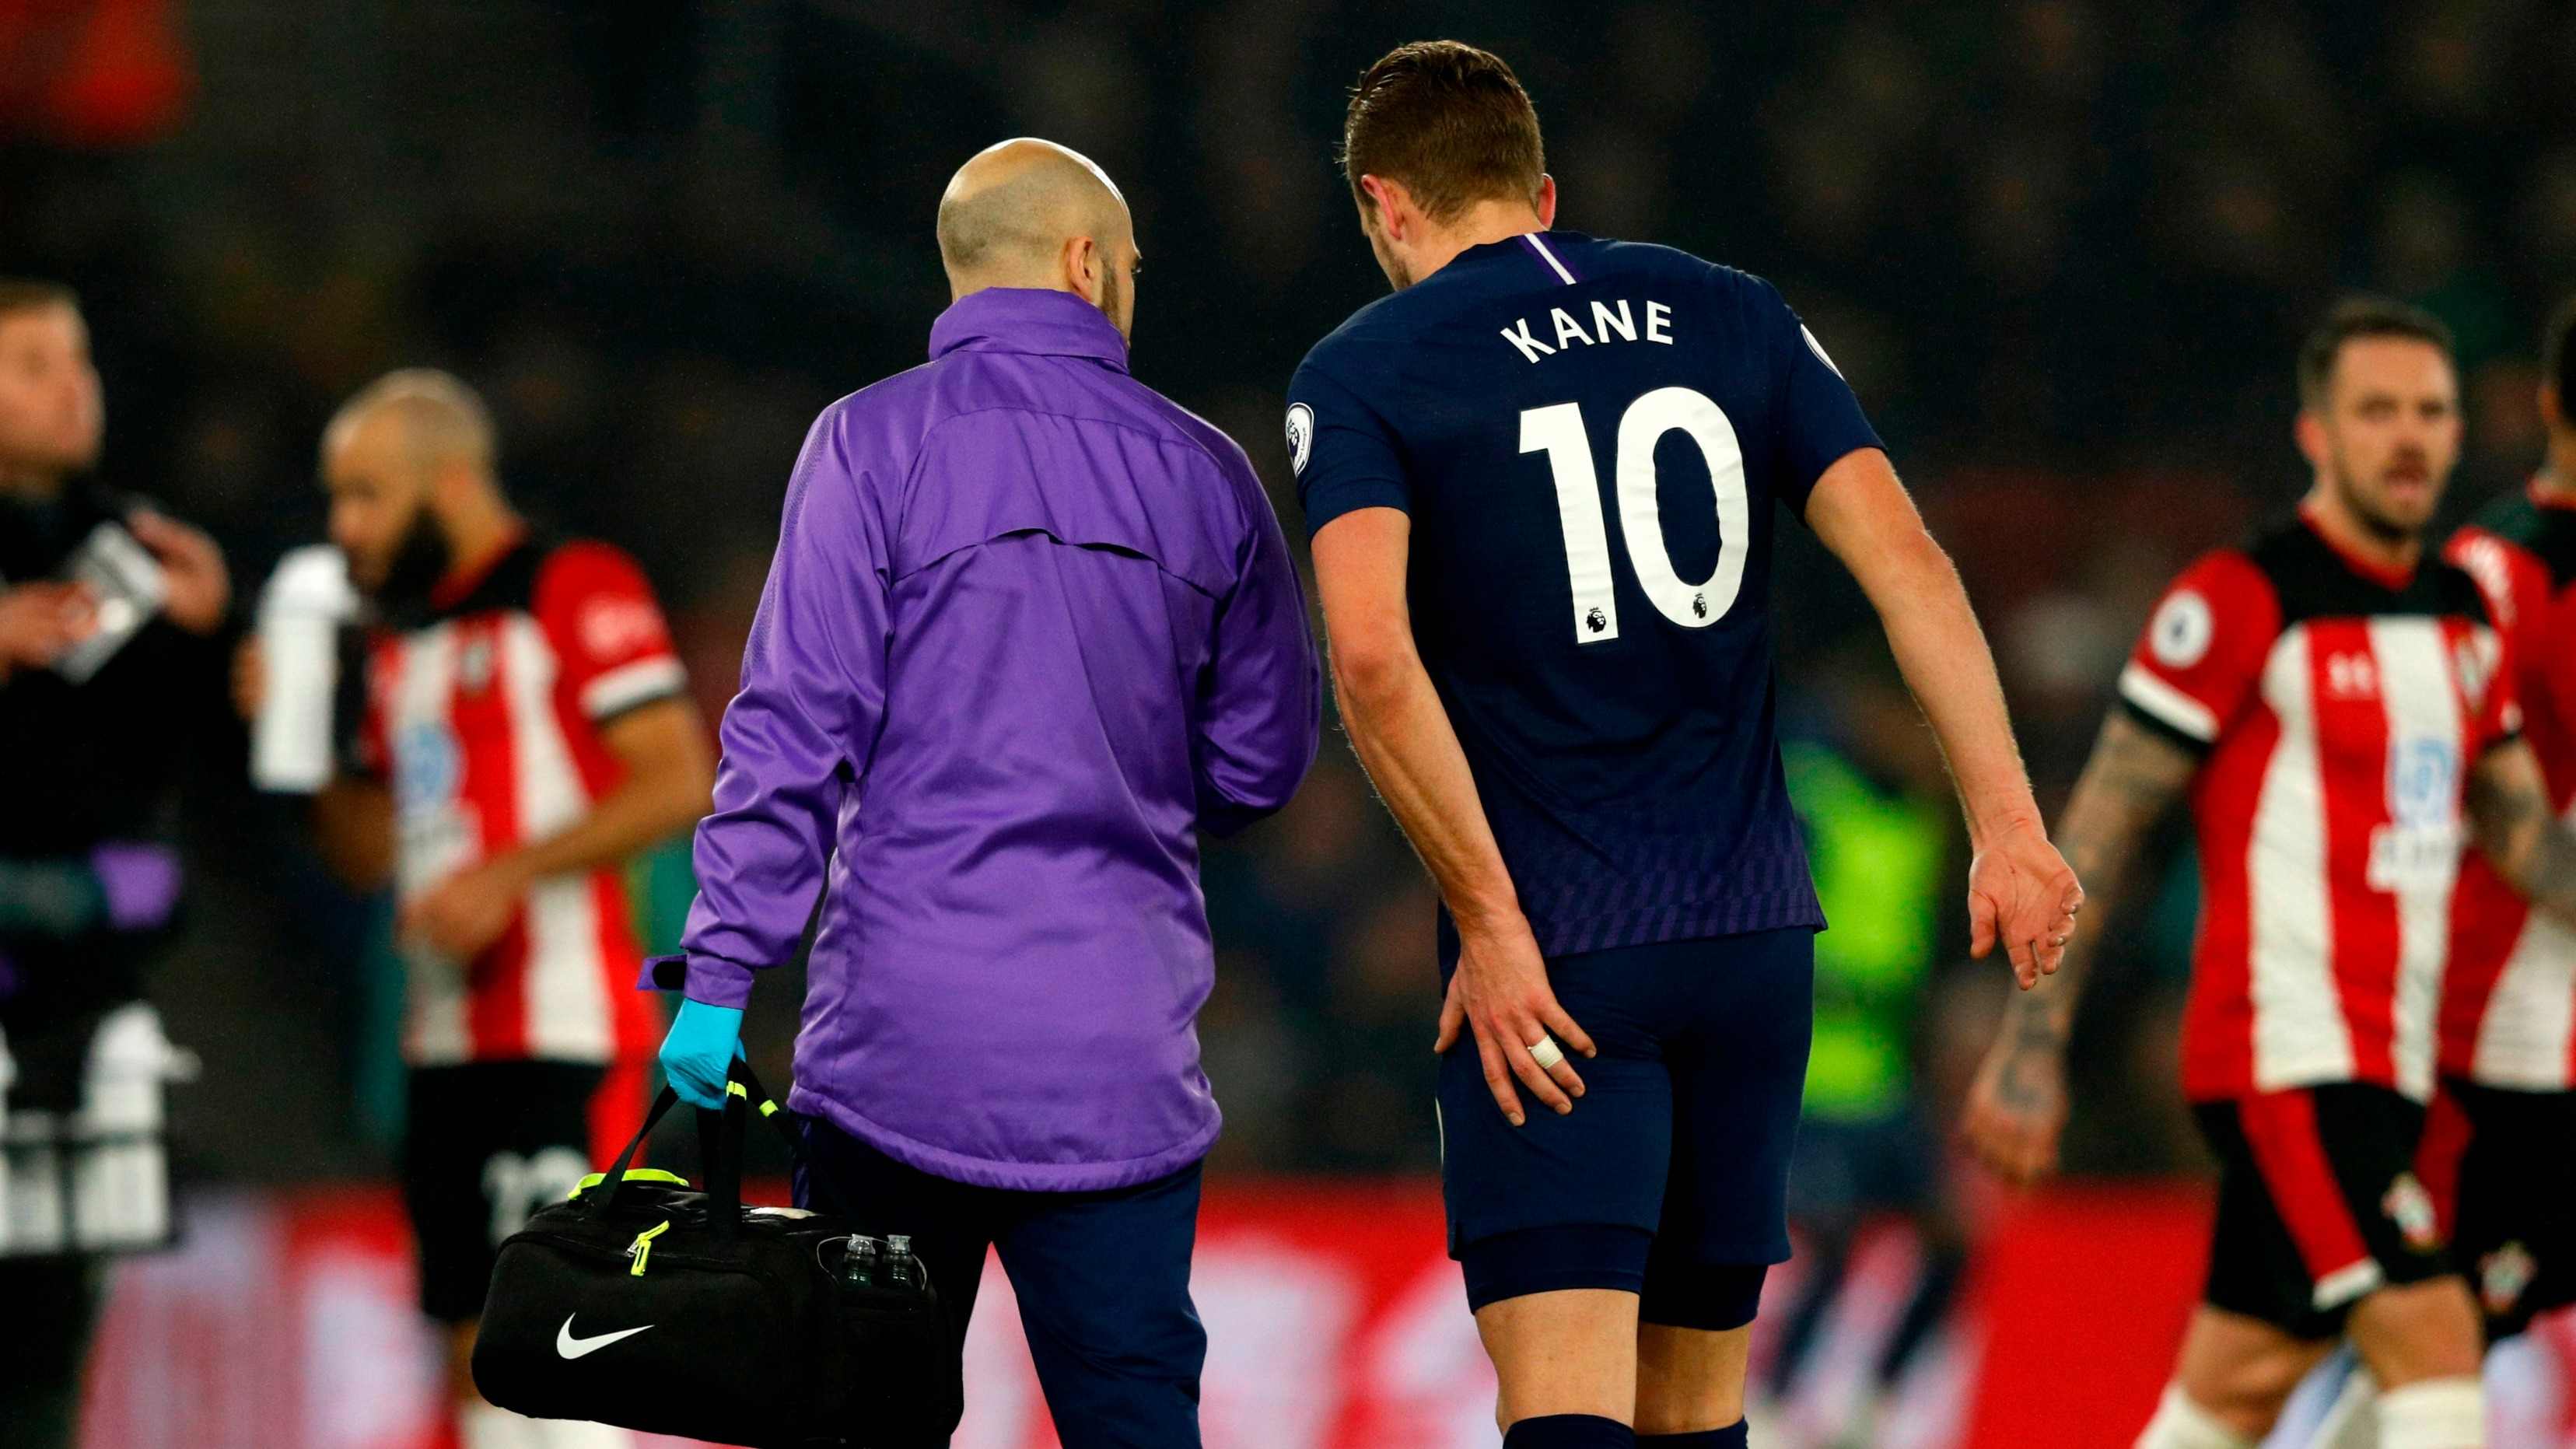 Kane says Premier League players came in for 'unfair criticism' during coronavirus pandemic